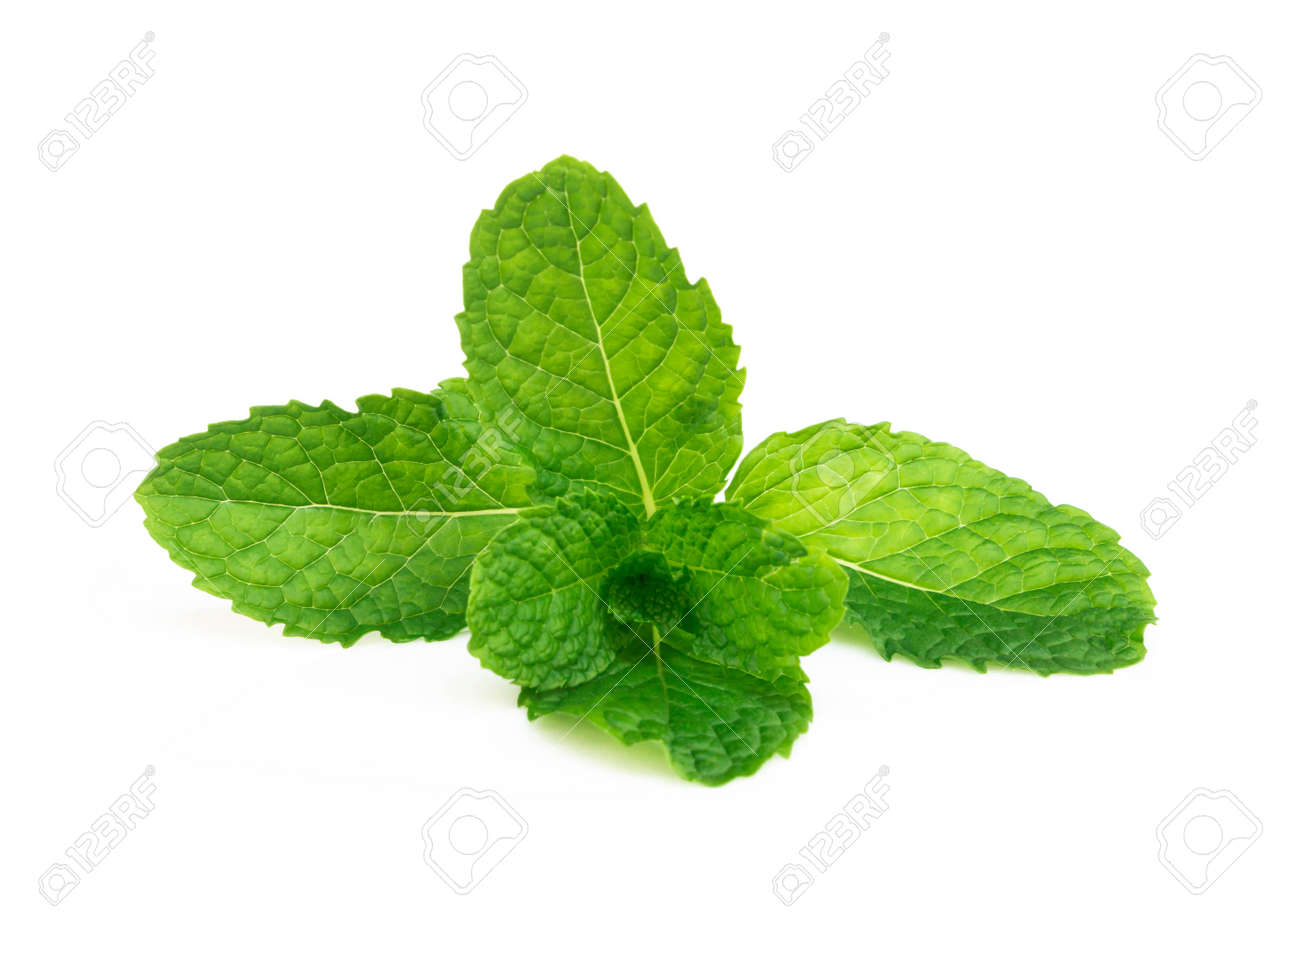 Fresh green mint leaves isolated on white background, Herb and medical concept - 120851208